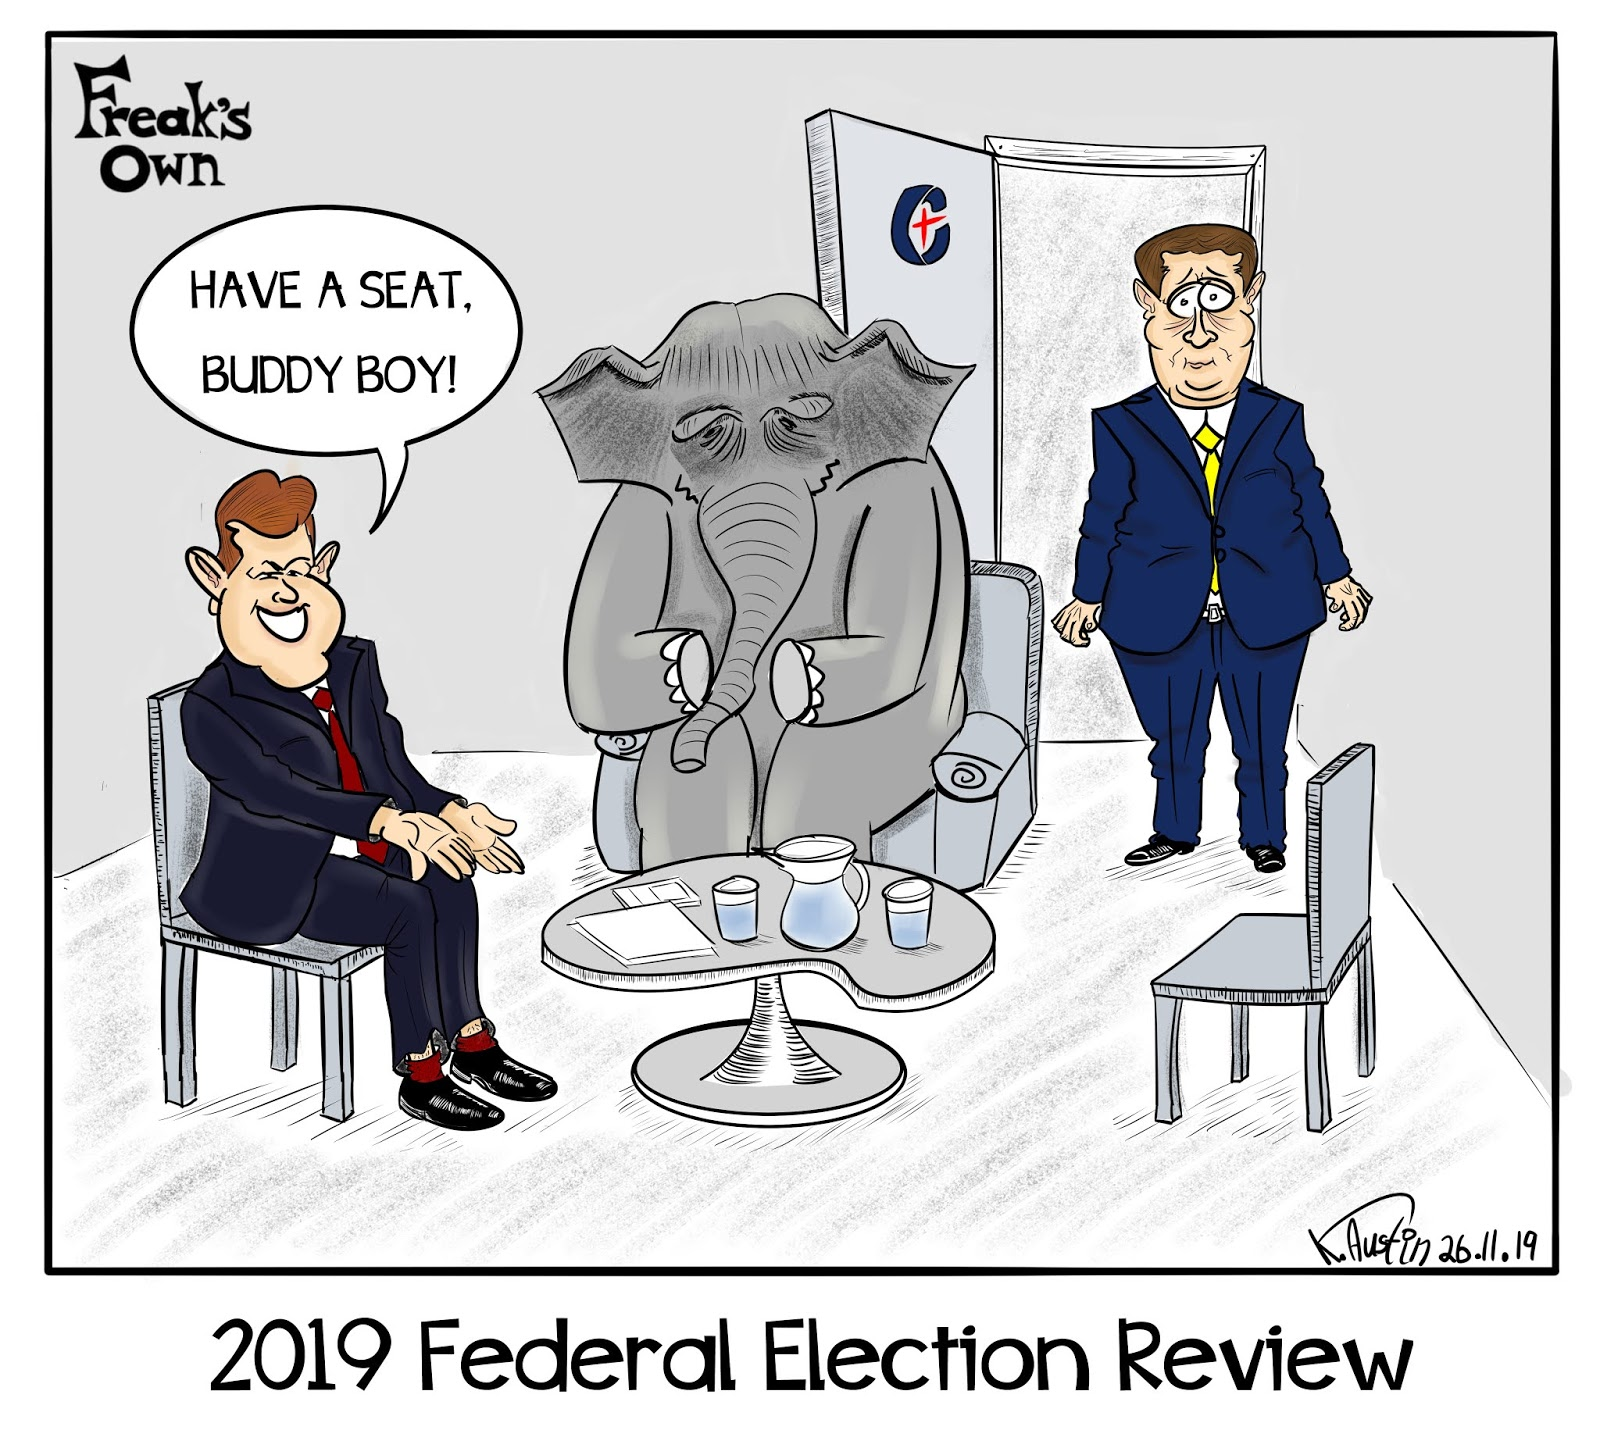 Freak's Own: 2019 Federal Election Review